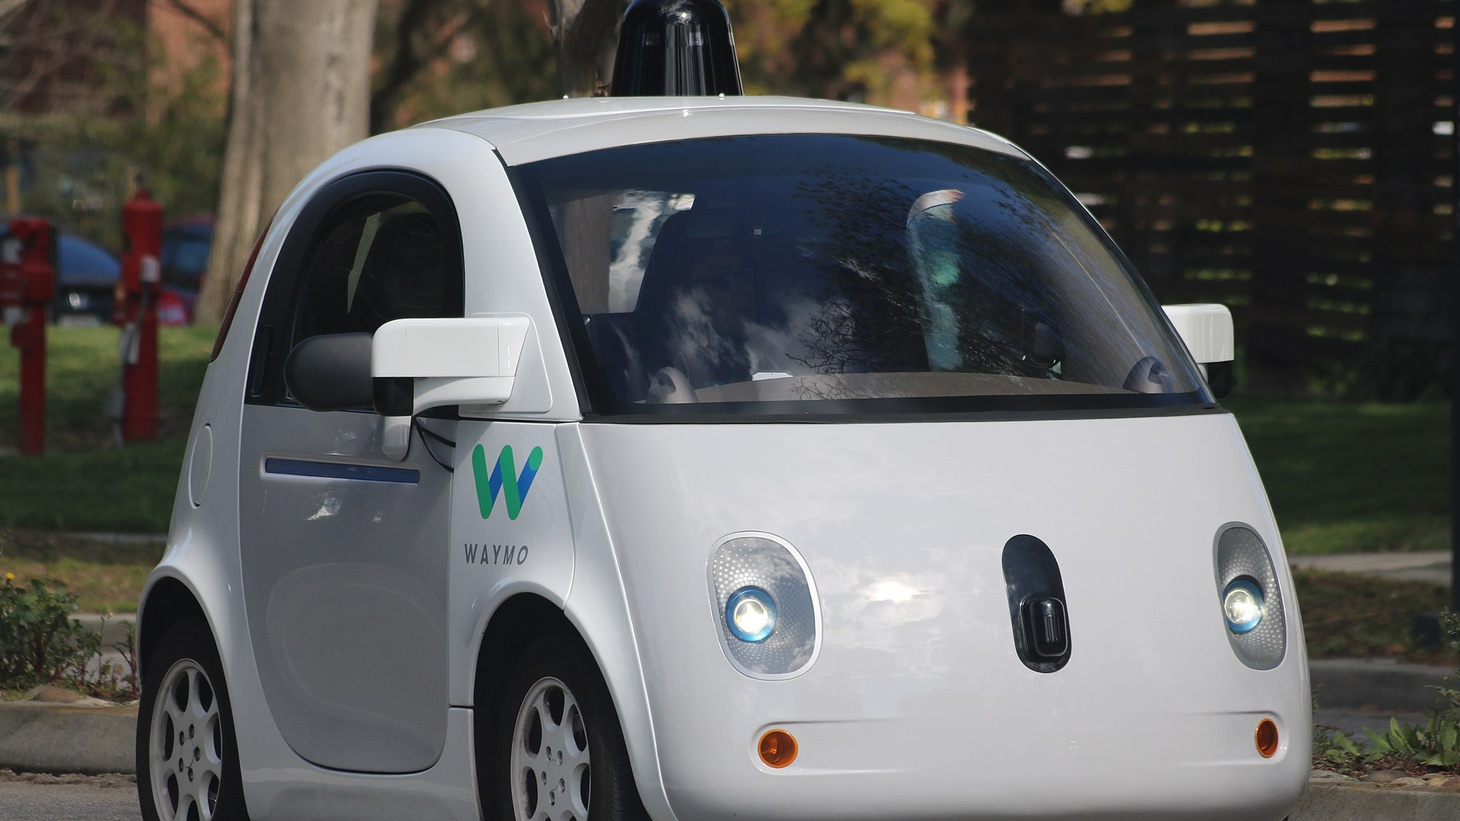 California is beginning to allow the testing of self-driving cars with no humans at the wheel. Critics say the technology is not ready for the roads, but supporters say autonomous vehicles will make streets safer.